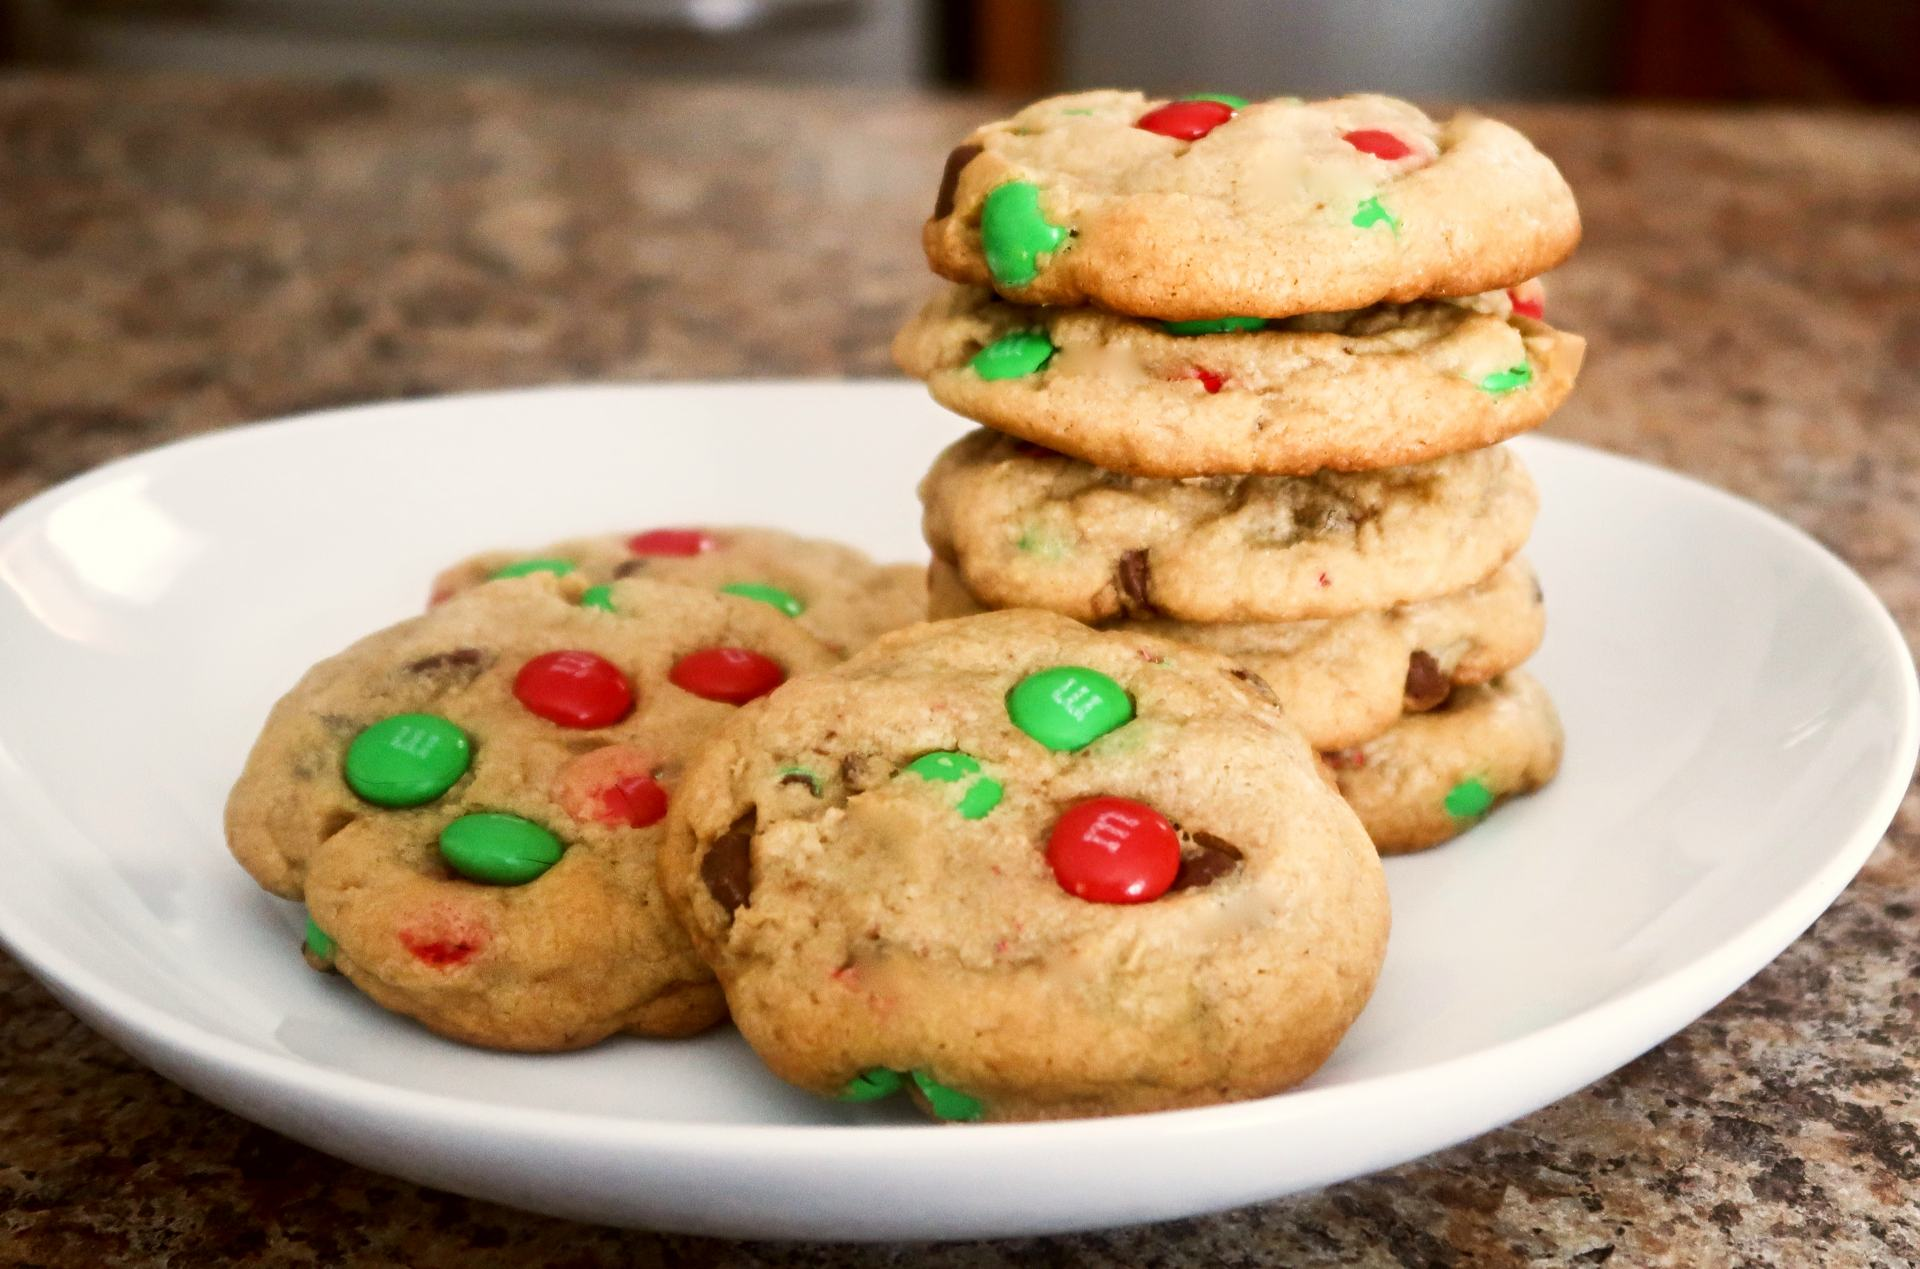 The Most Amazing recipe for Chocolate Chip Cookies